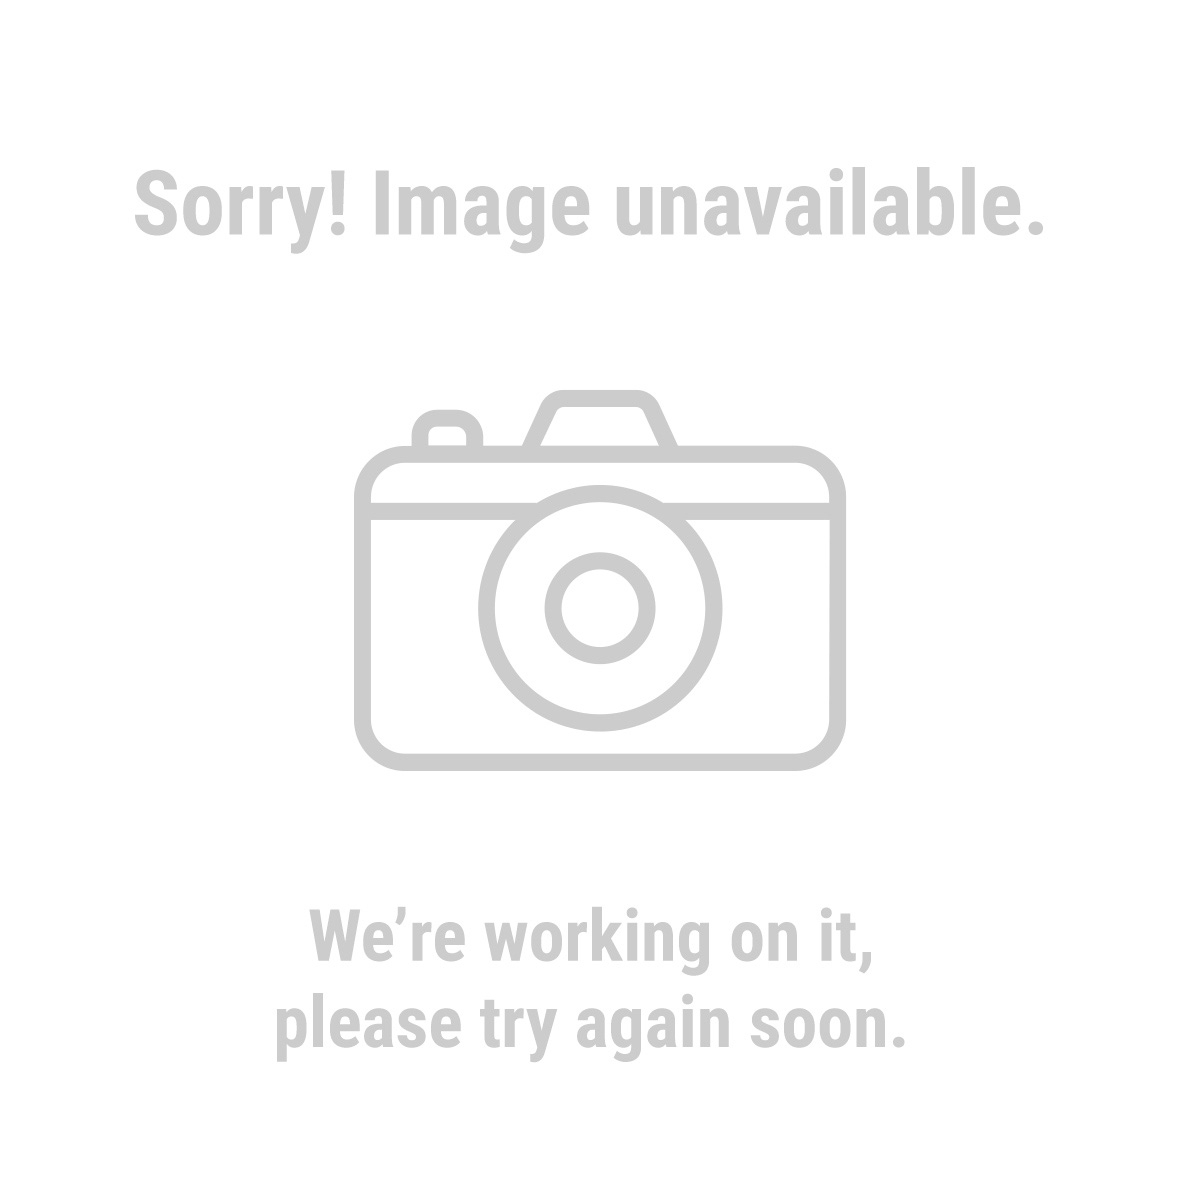 Chicago Electric Power Tools 69334 8.5 Amp 2-in-1 1-9/16 in. Variable Speed SDS Max Type Rotary Hammer